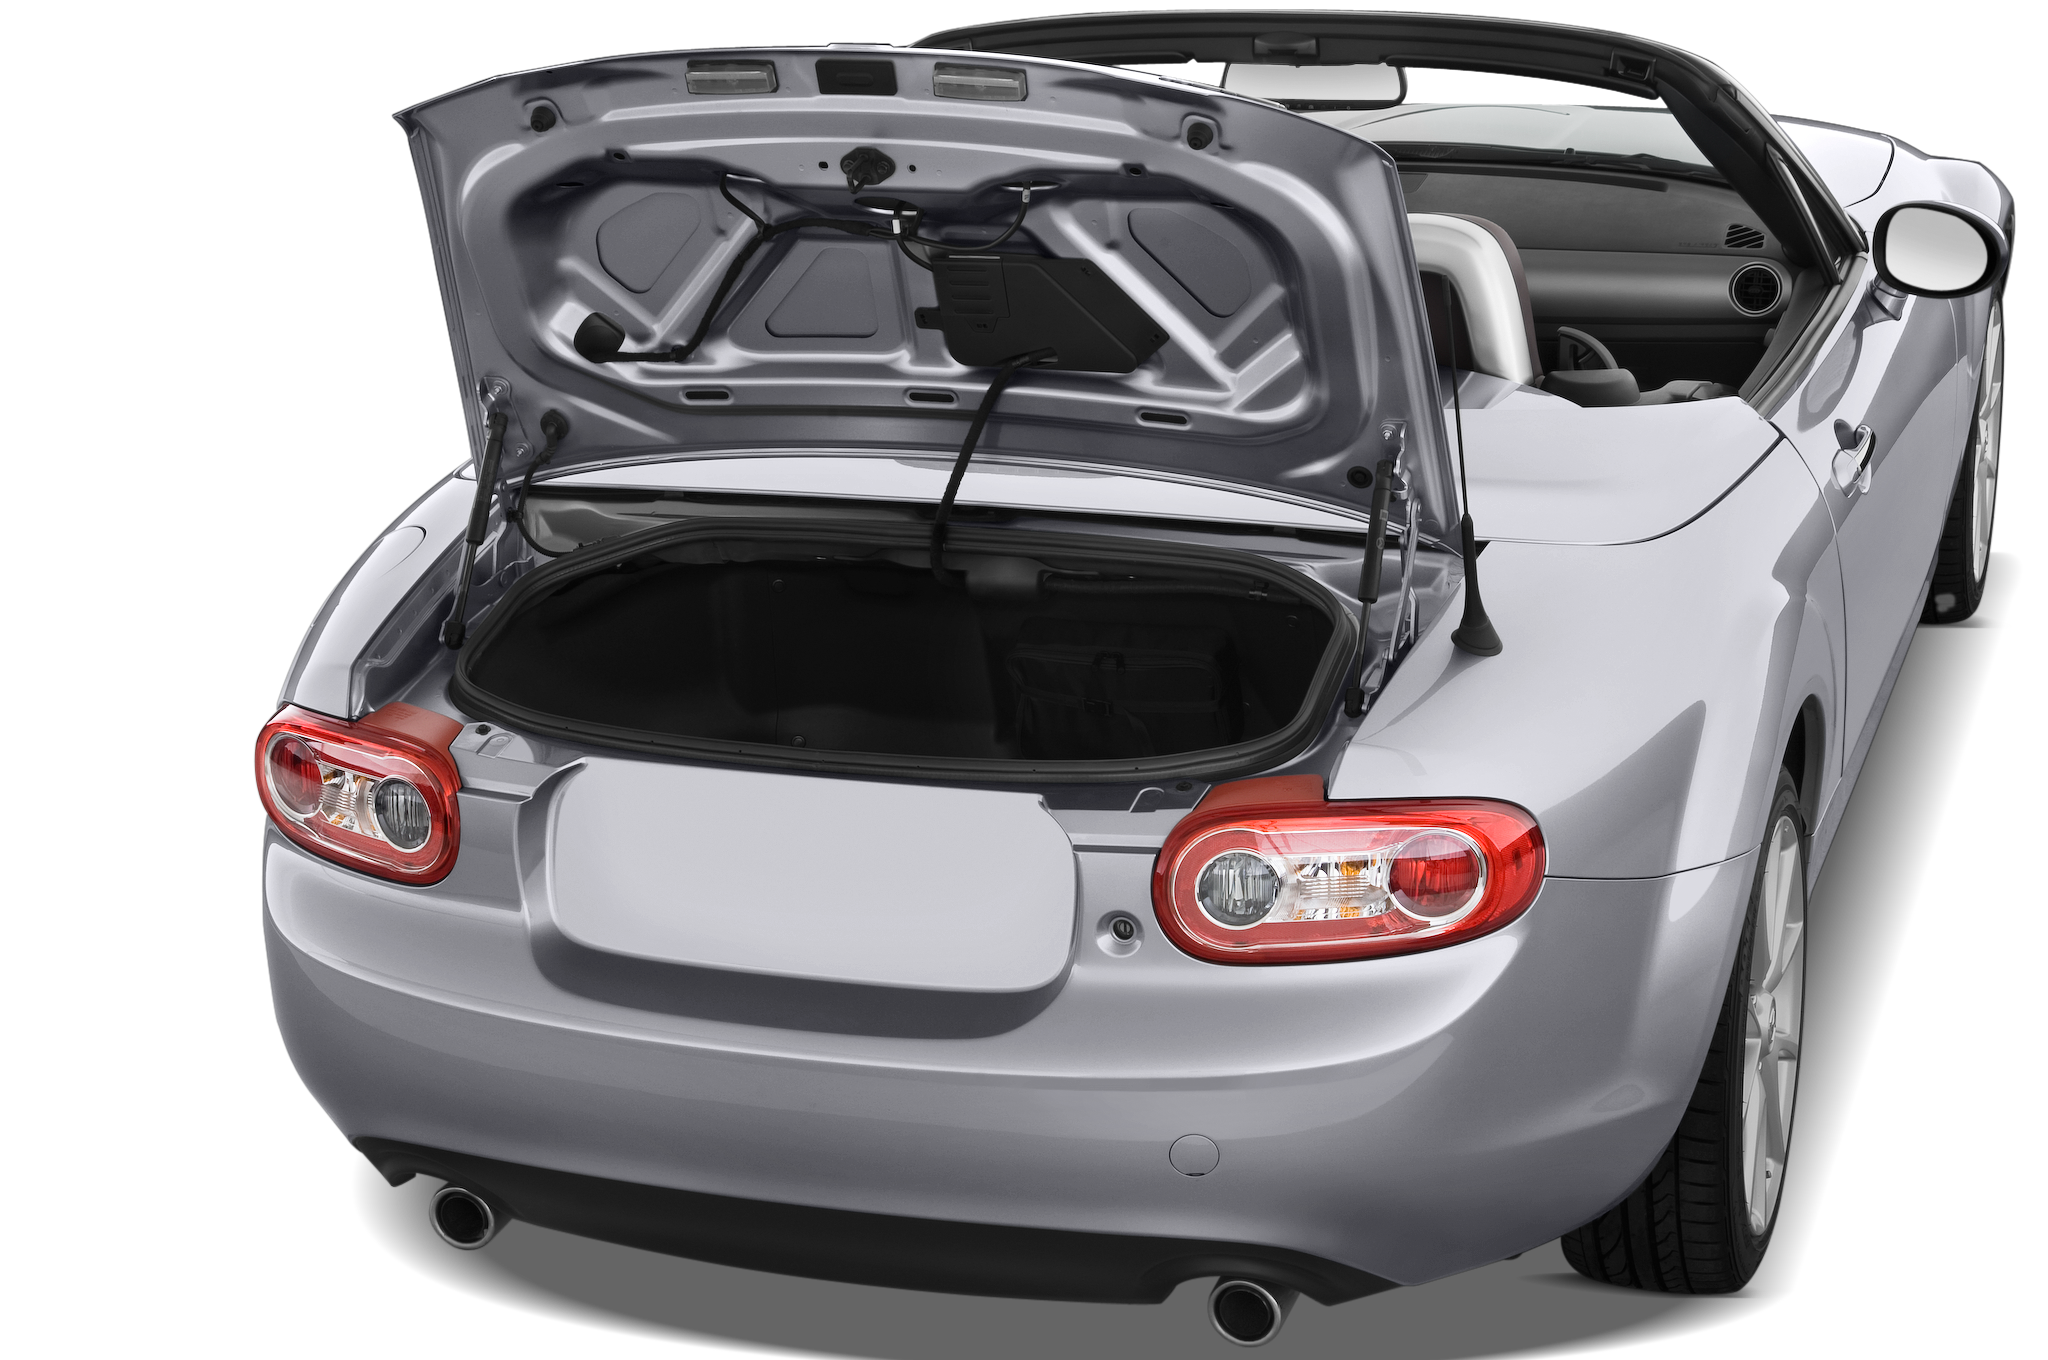 http://st.automobilemag.com/uploads/sites/10/2015/11/2012-mazda-mx5-miata-grand-touring-hard-top-auto-convertible-trunk.png